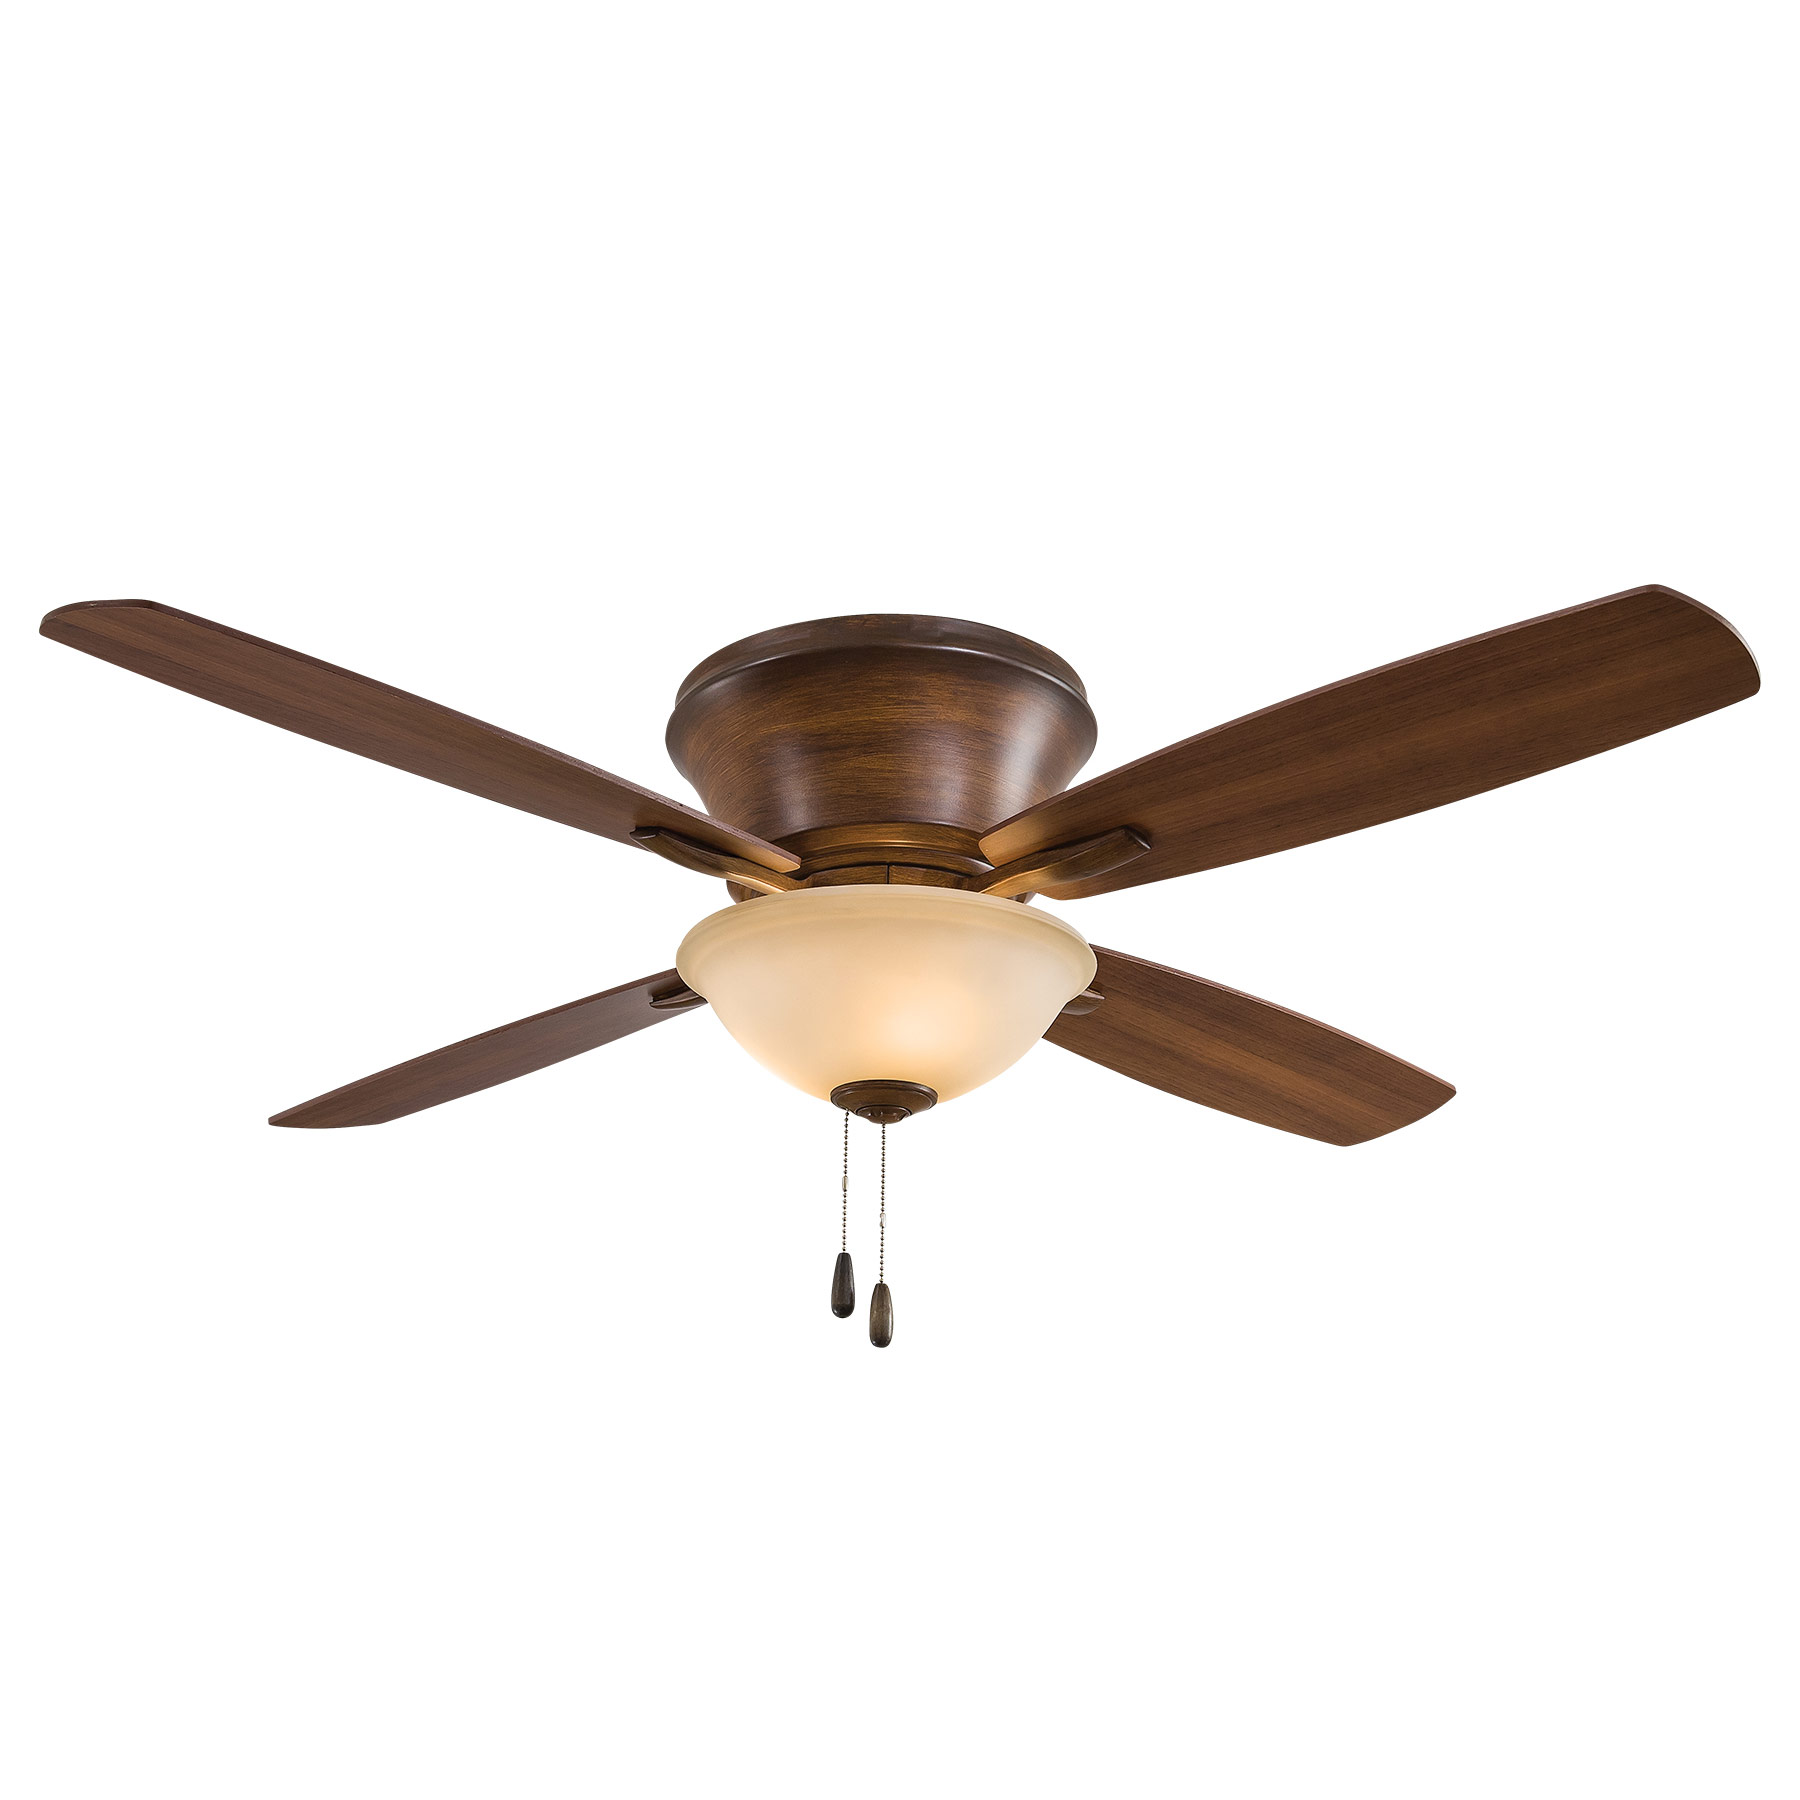 ceiling ideas aire minka fan simple blade fans of nice inch